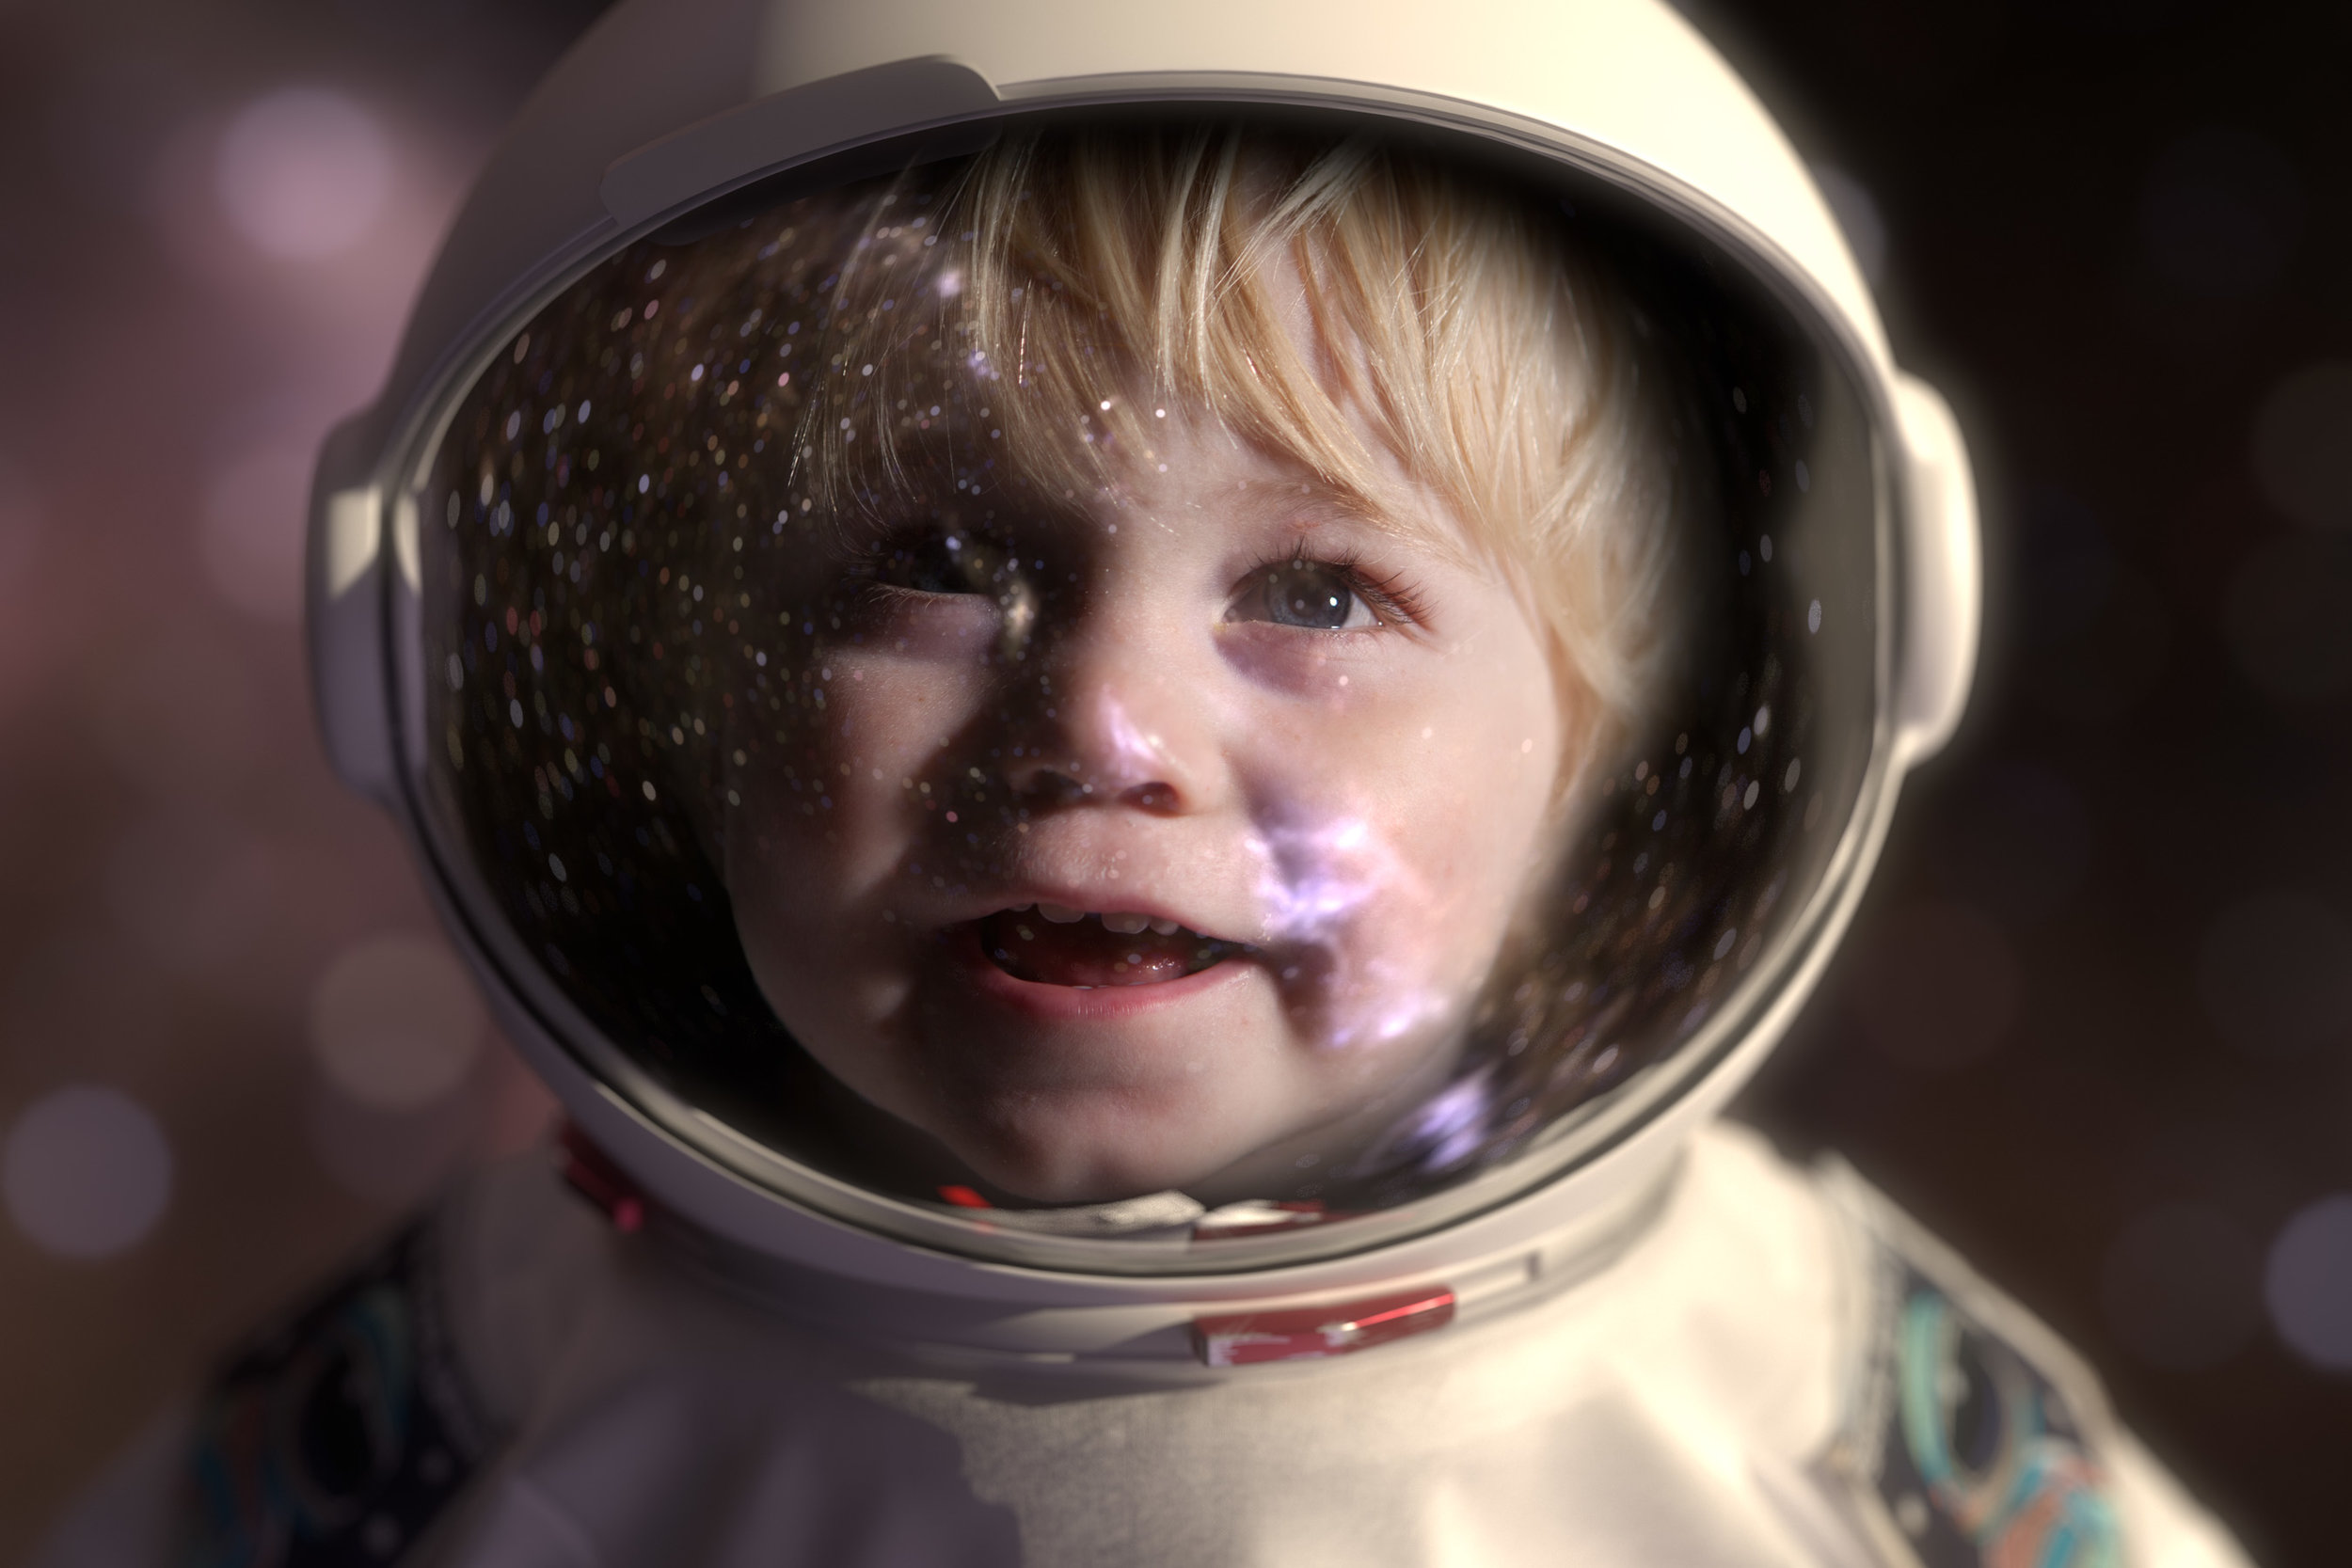 Toddler in space